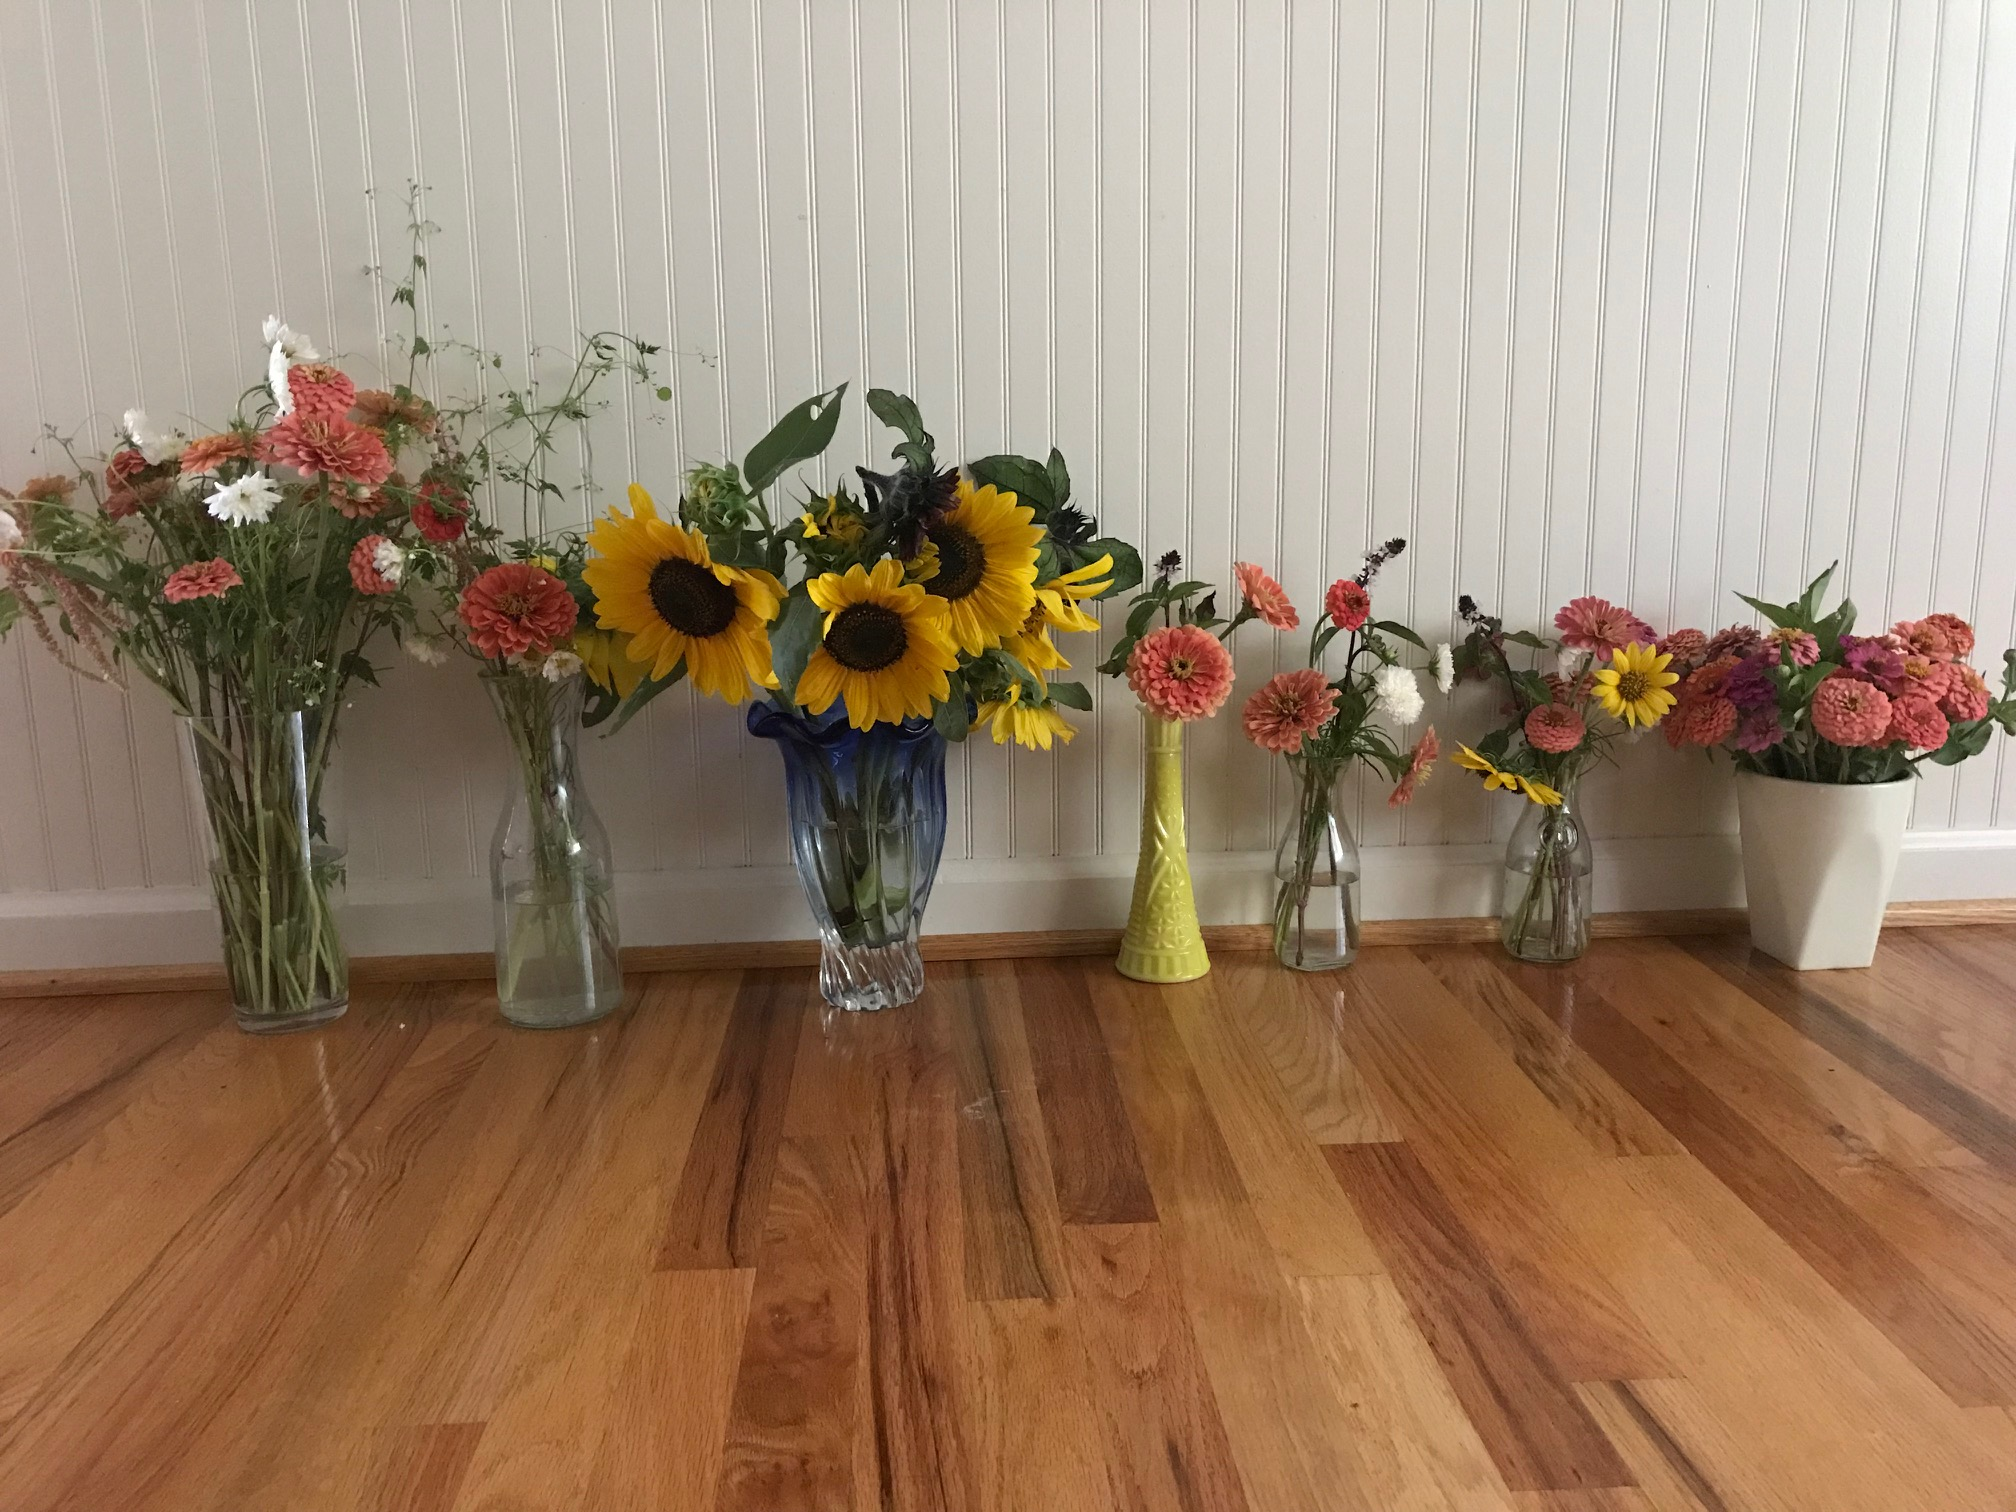 bouquets lined up